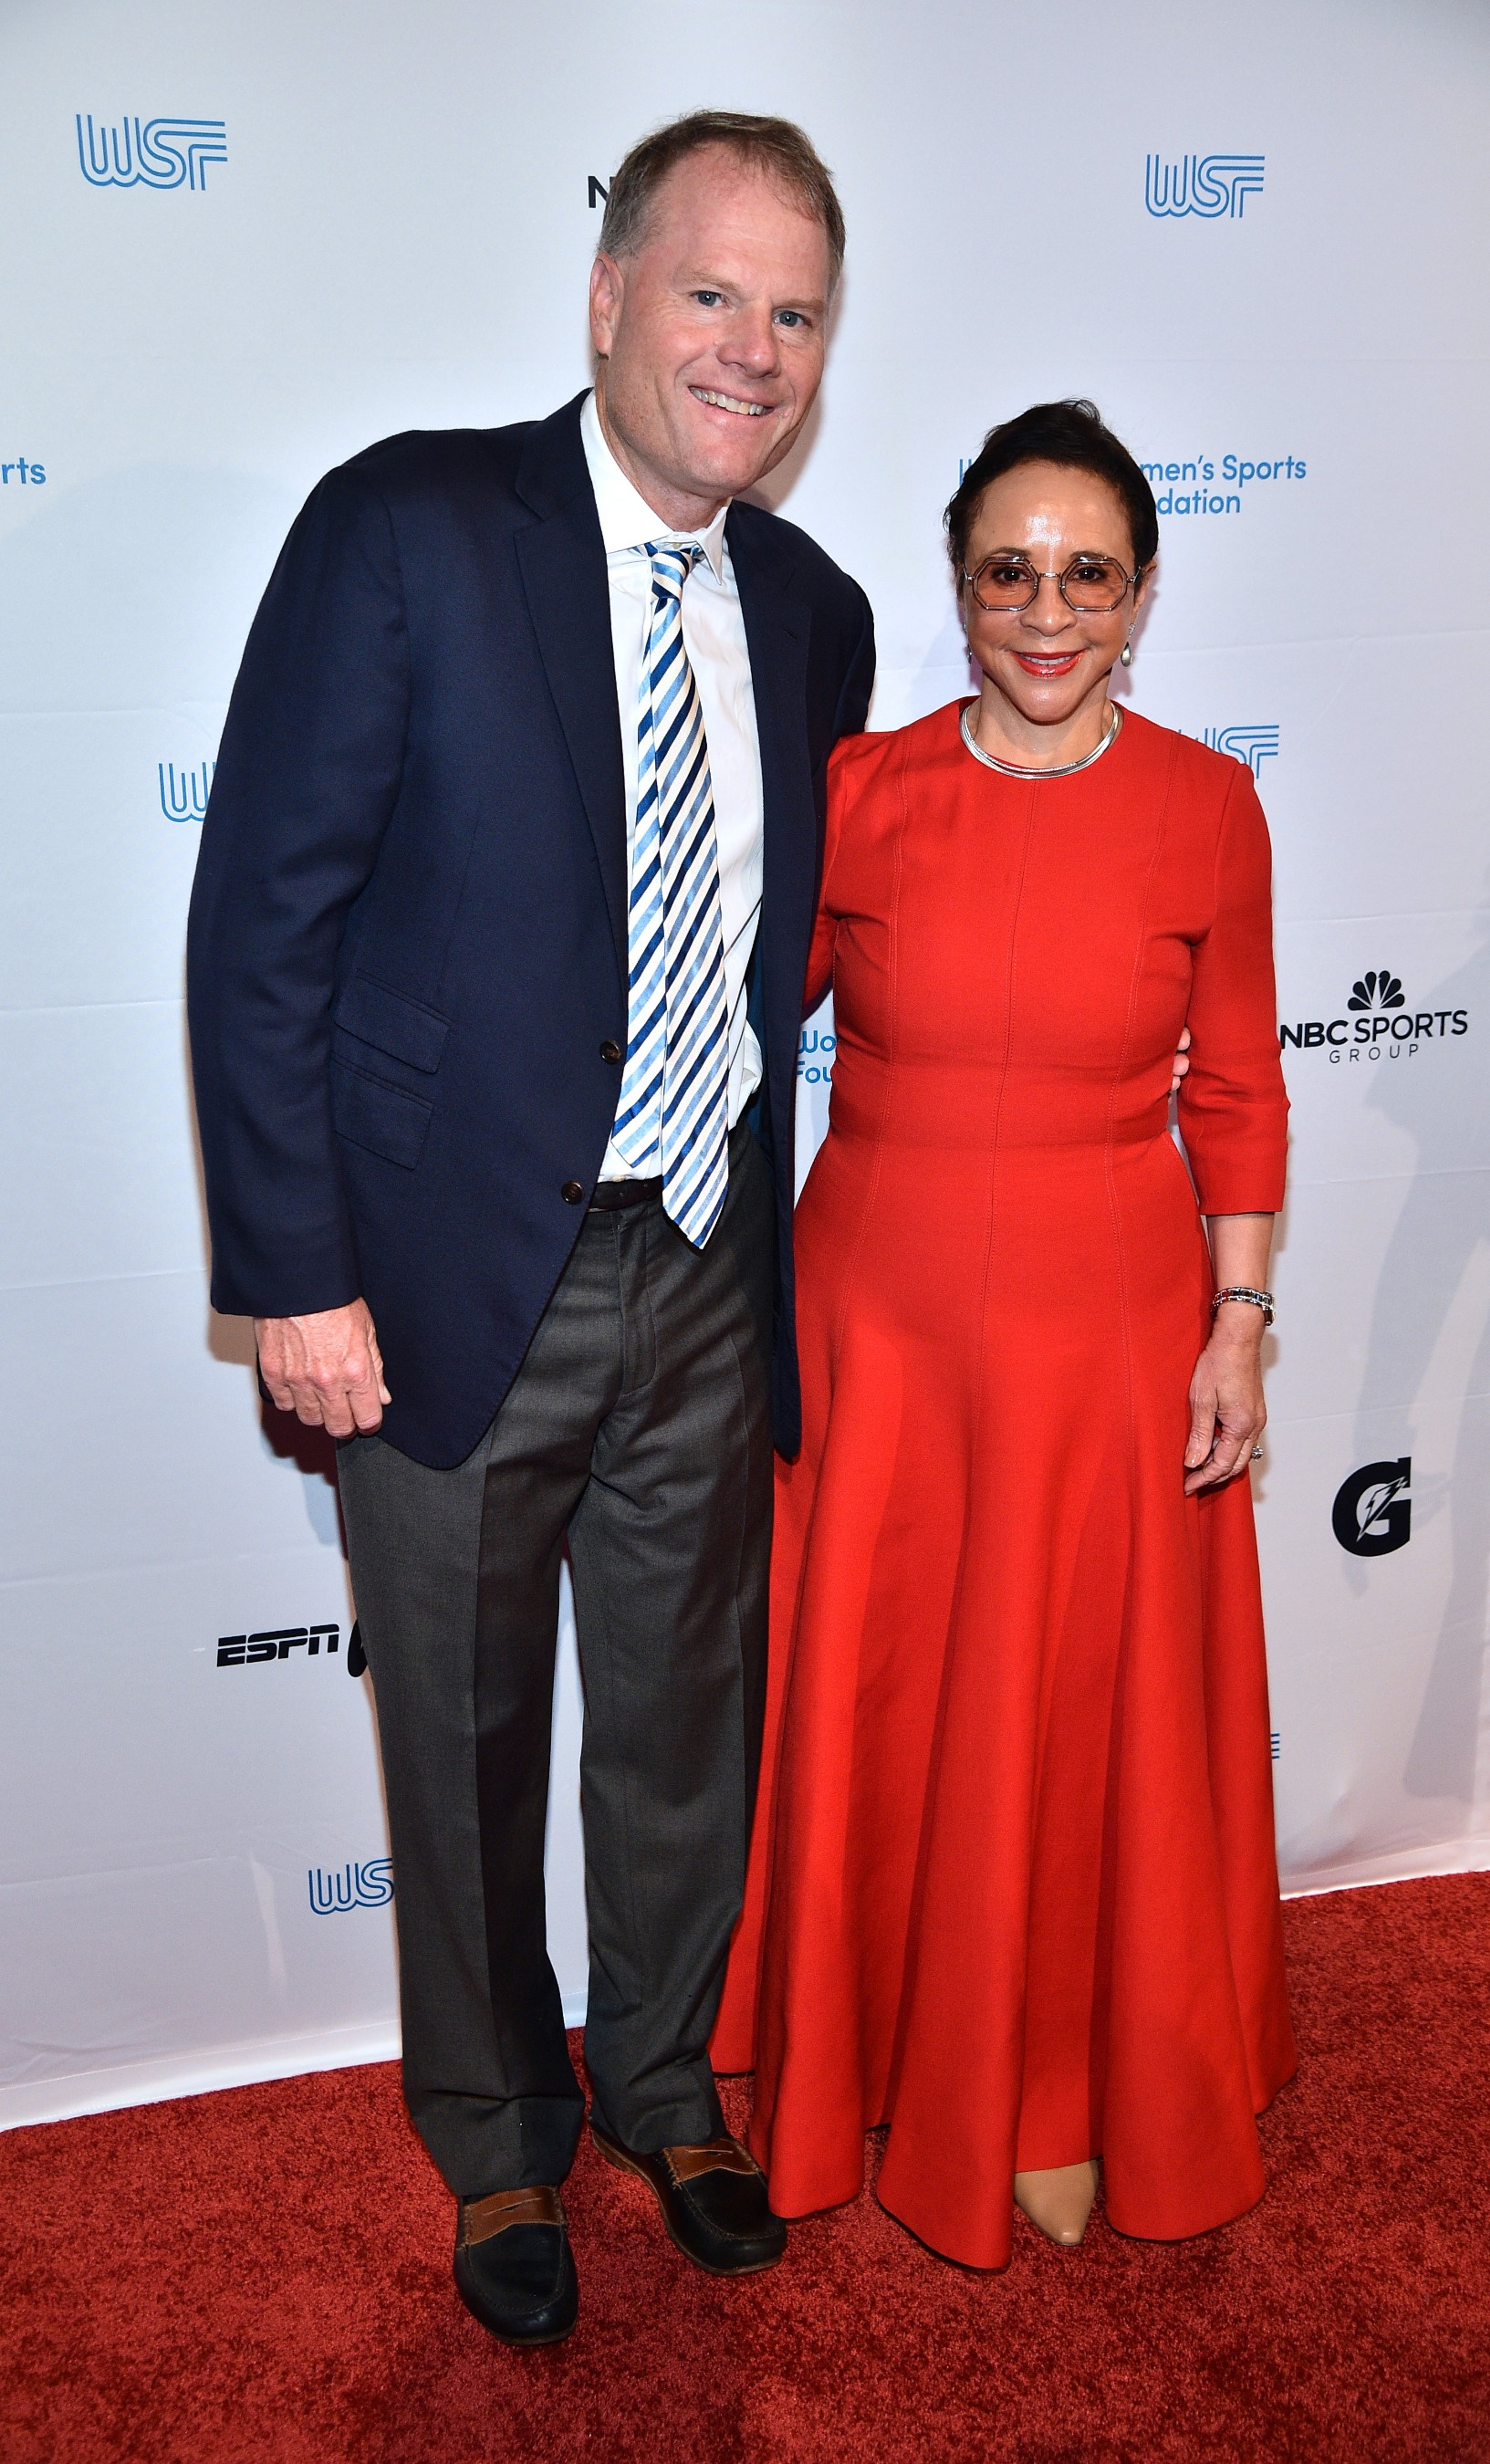 John Burke and Sheila C. Johnson were honored by the Women's Sports Foundation at the 40th Annual Salute to Women in Sports in New York City. (Getty Images for the Women's Sports Foundation)